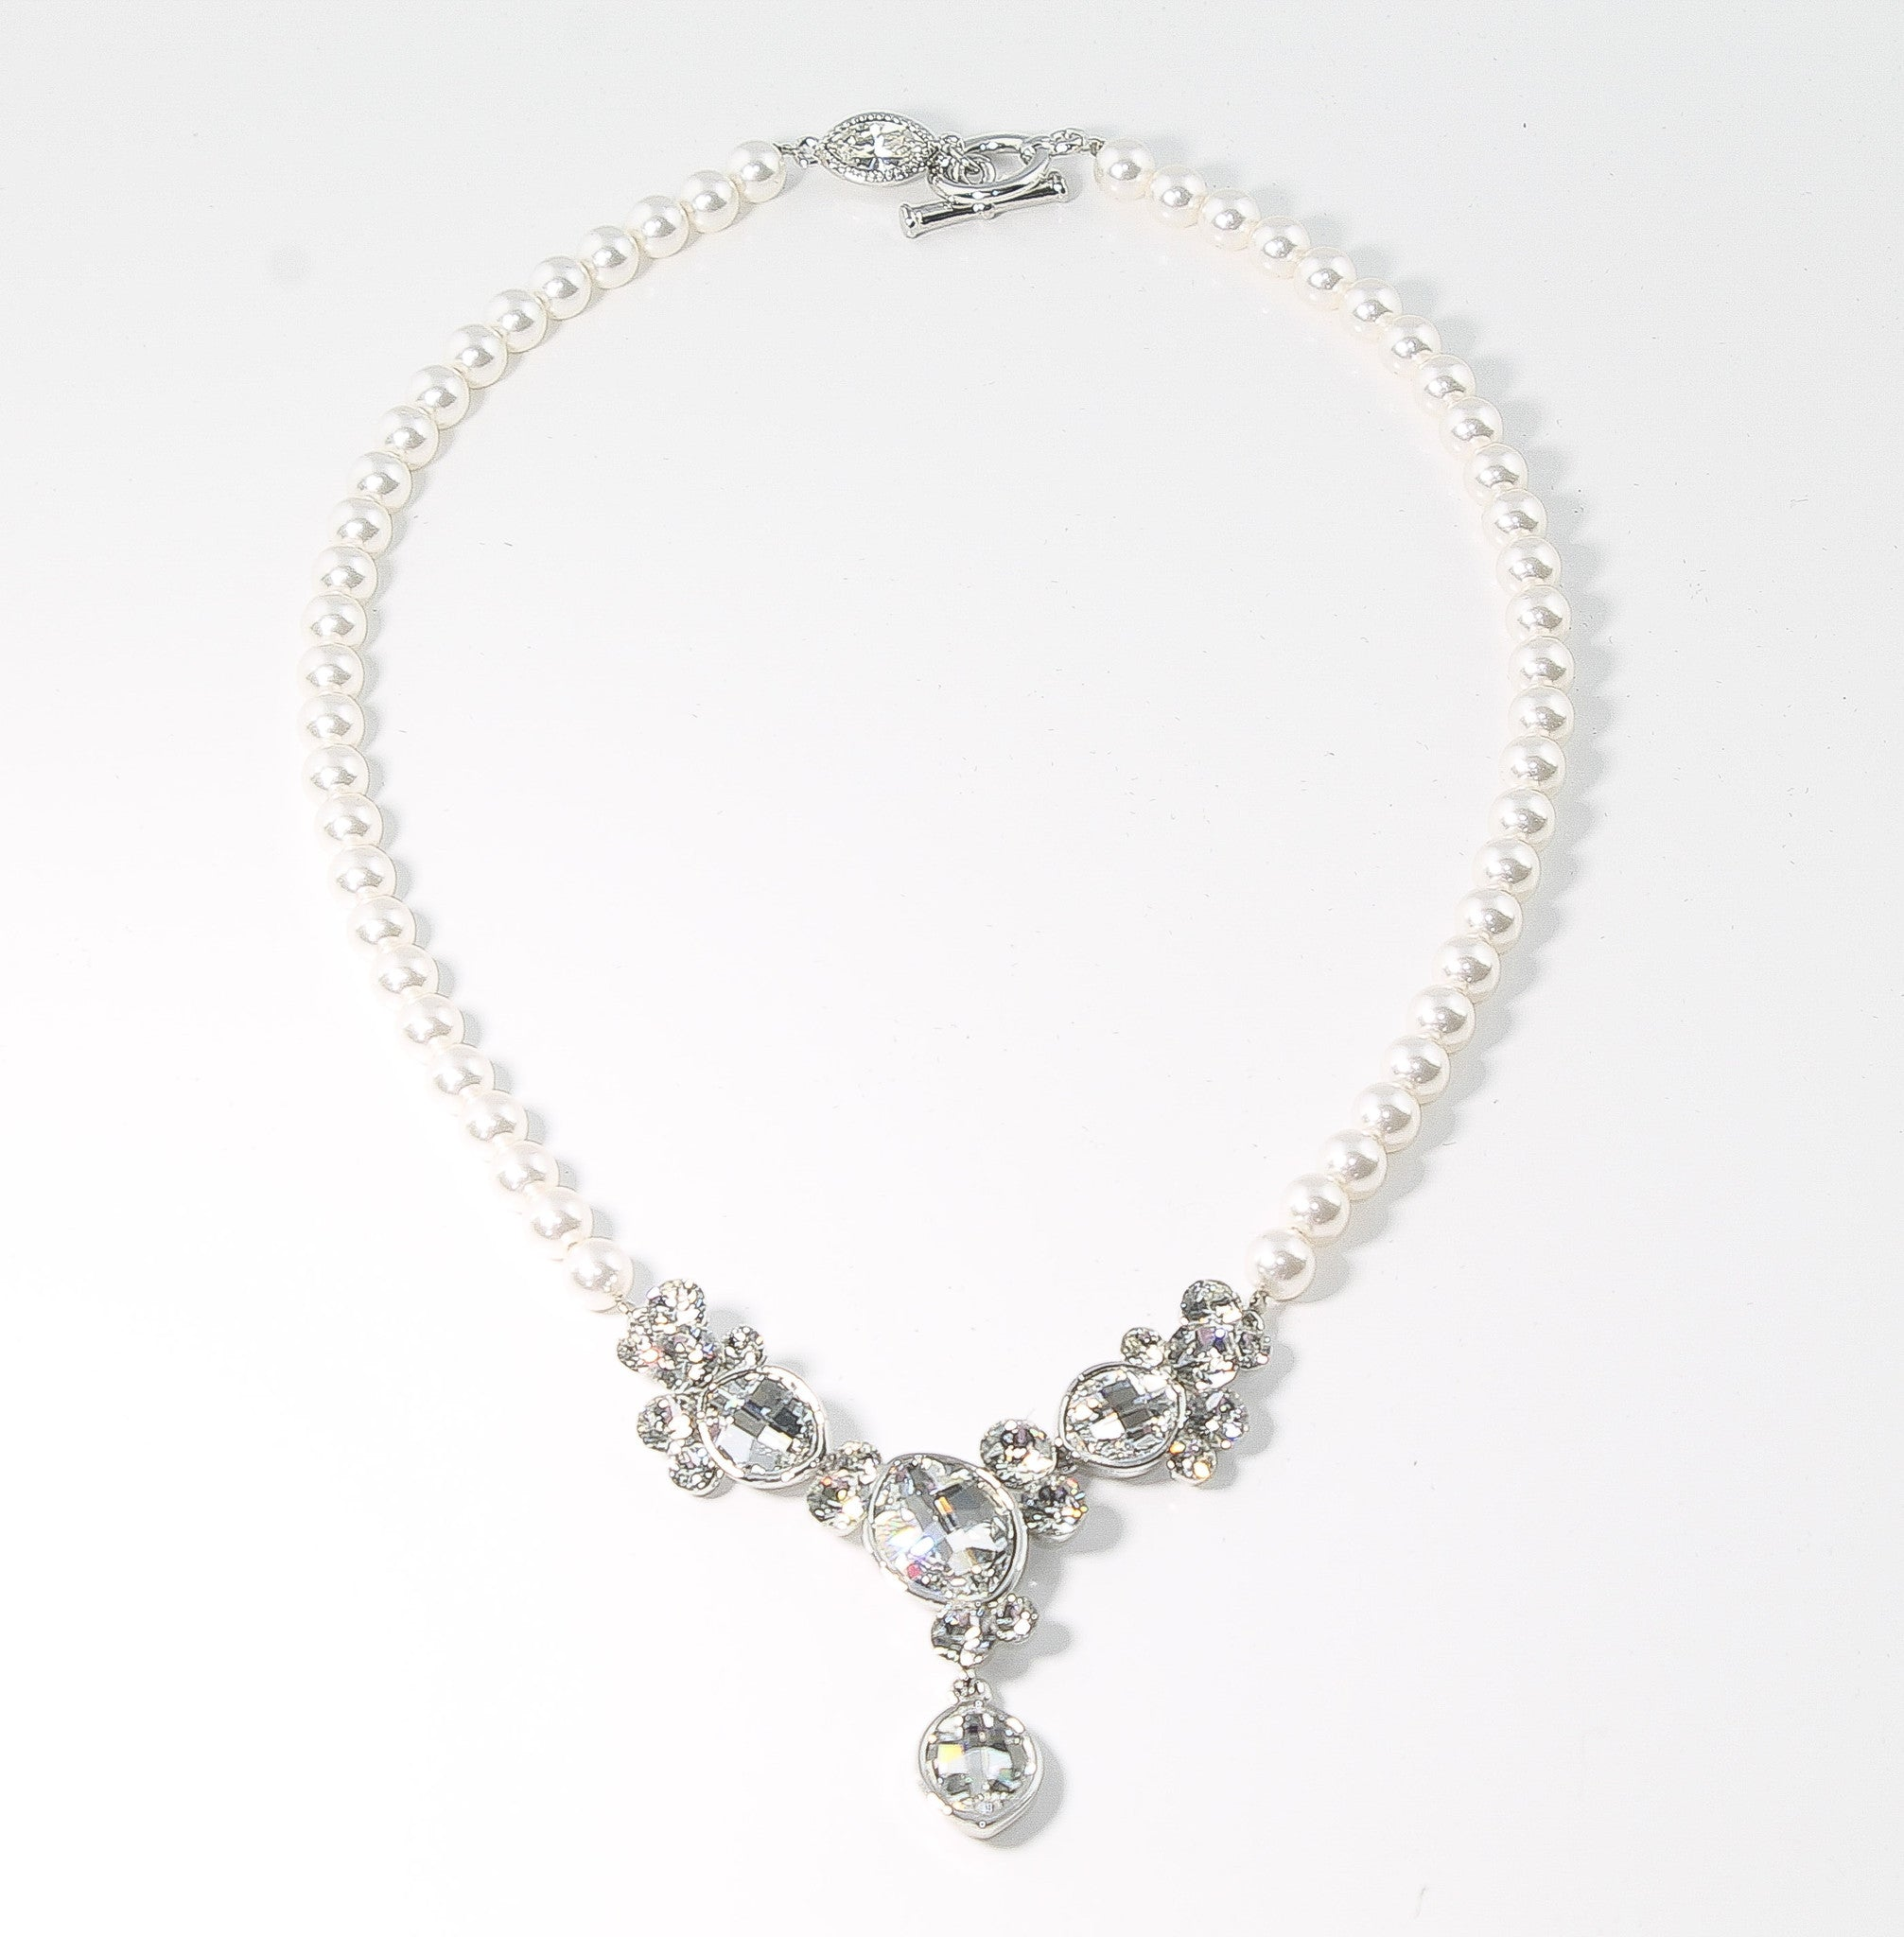 Wedding Necklace Handcrafted Swarovski Crystals and Pearls